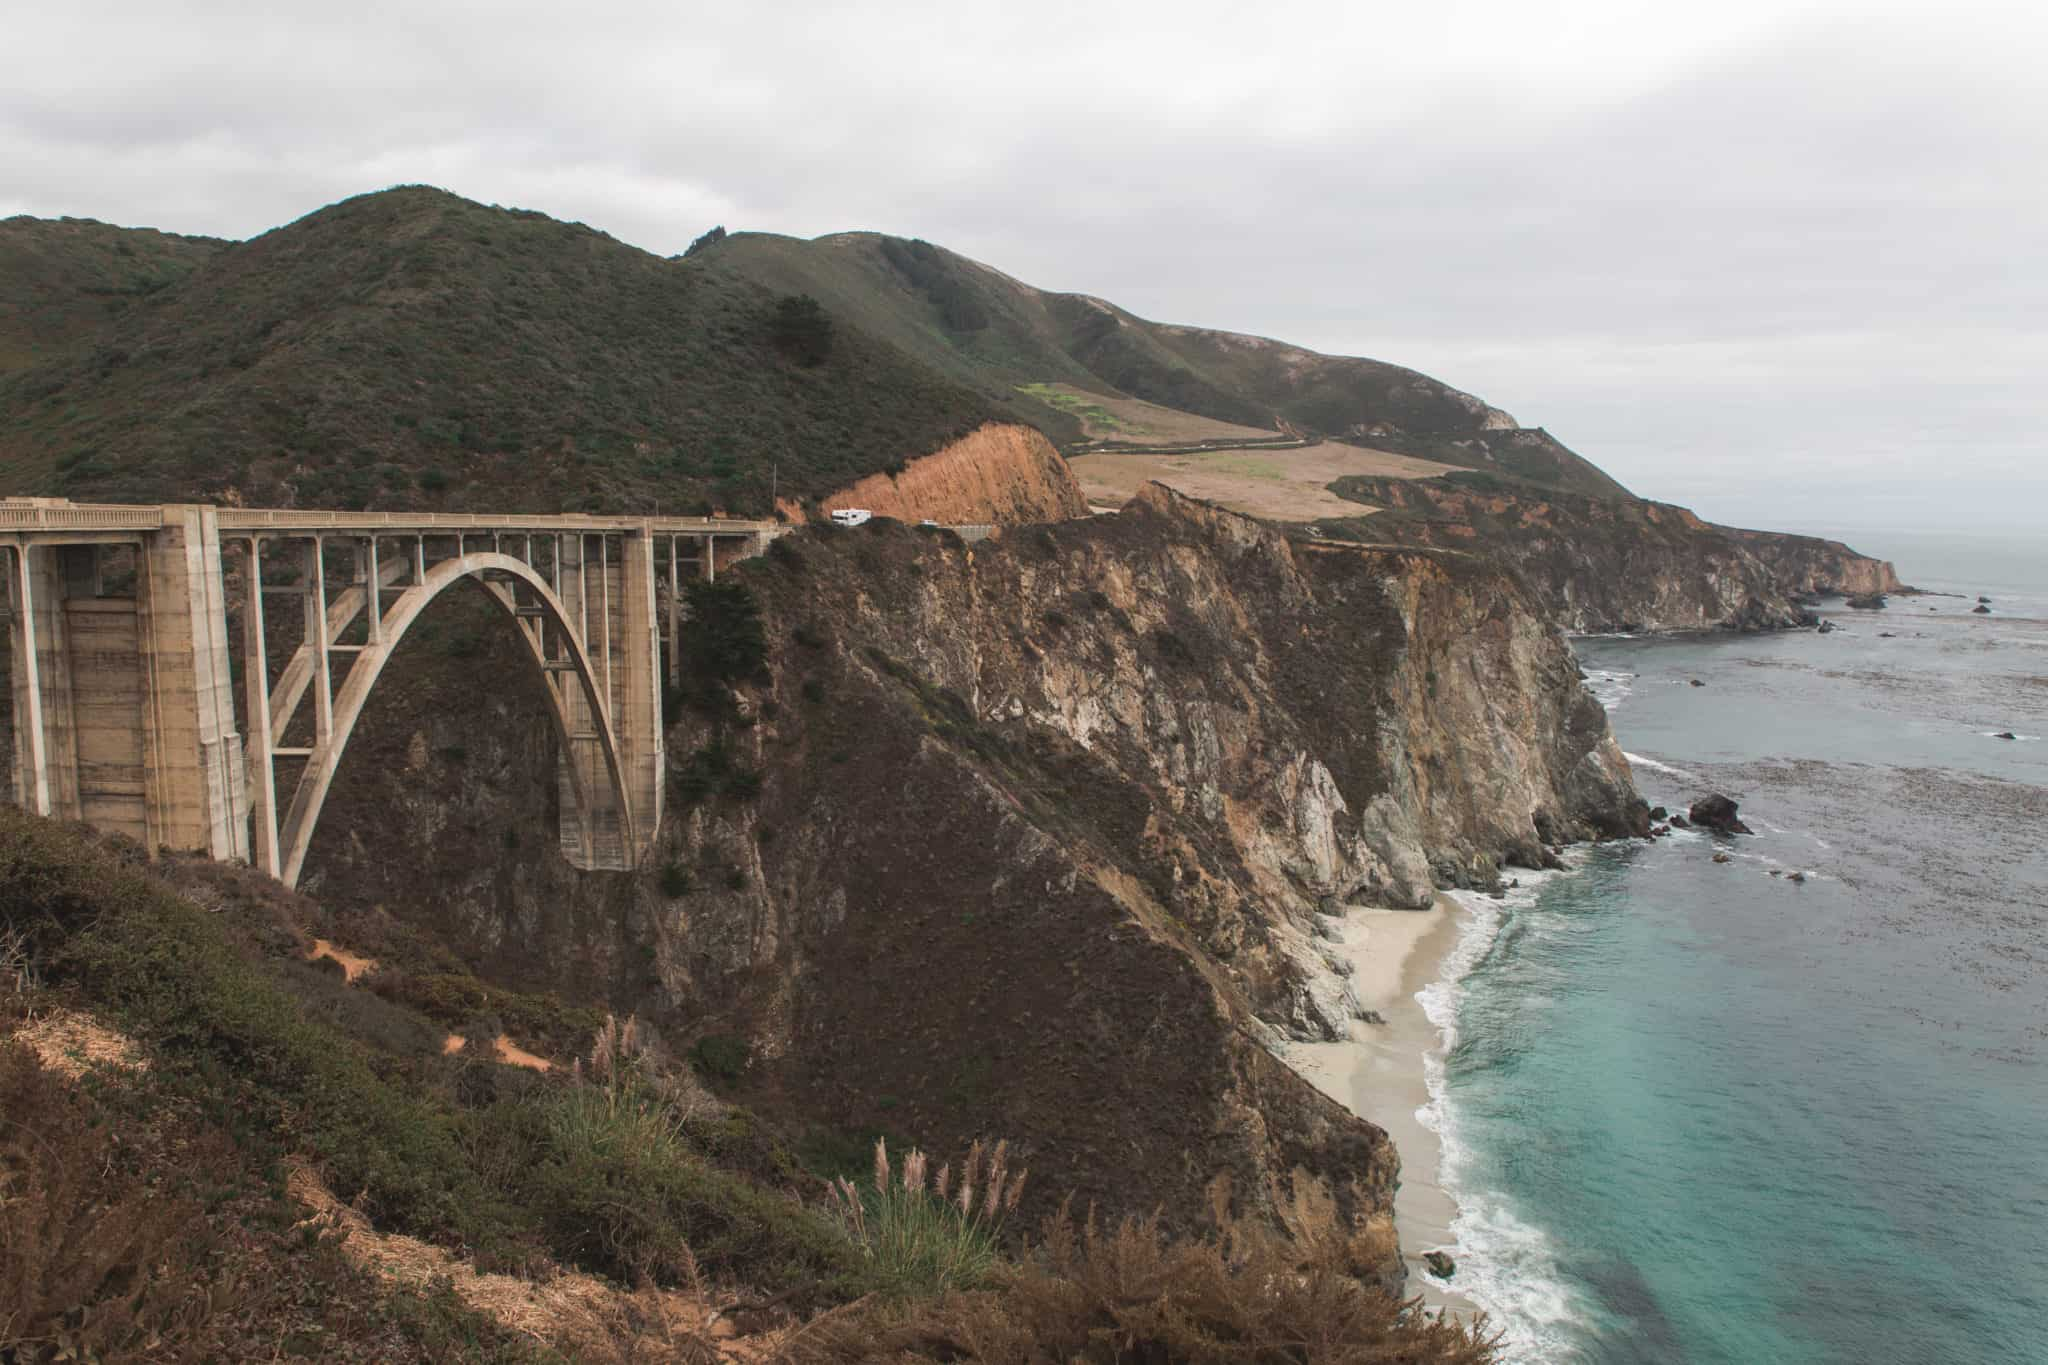 Bixby Bridge - Big Sur - Higway 1 - California - USA - CA